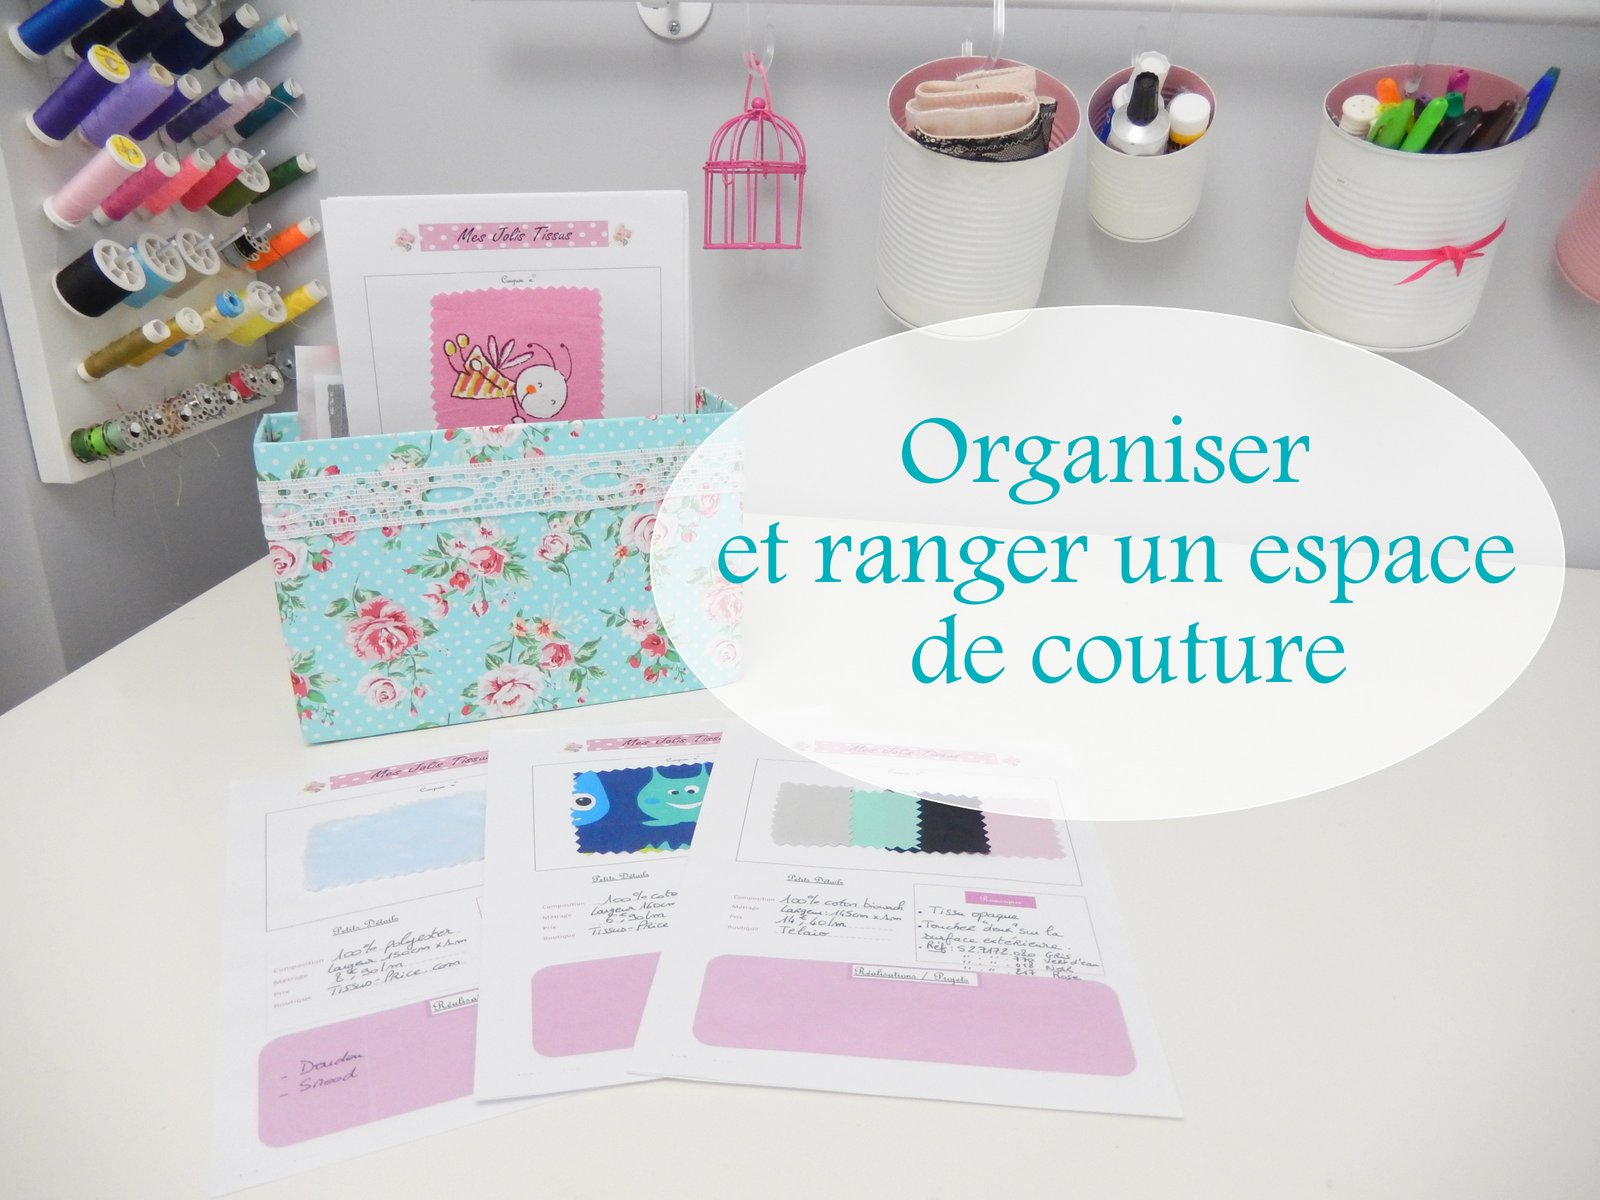 organiser et ranger un espace de couture mon carnet d co diy organisation du quotidien. Black Bedroom Furniture Sets. Home Design Ideas